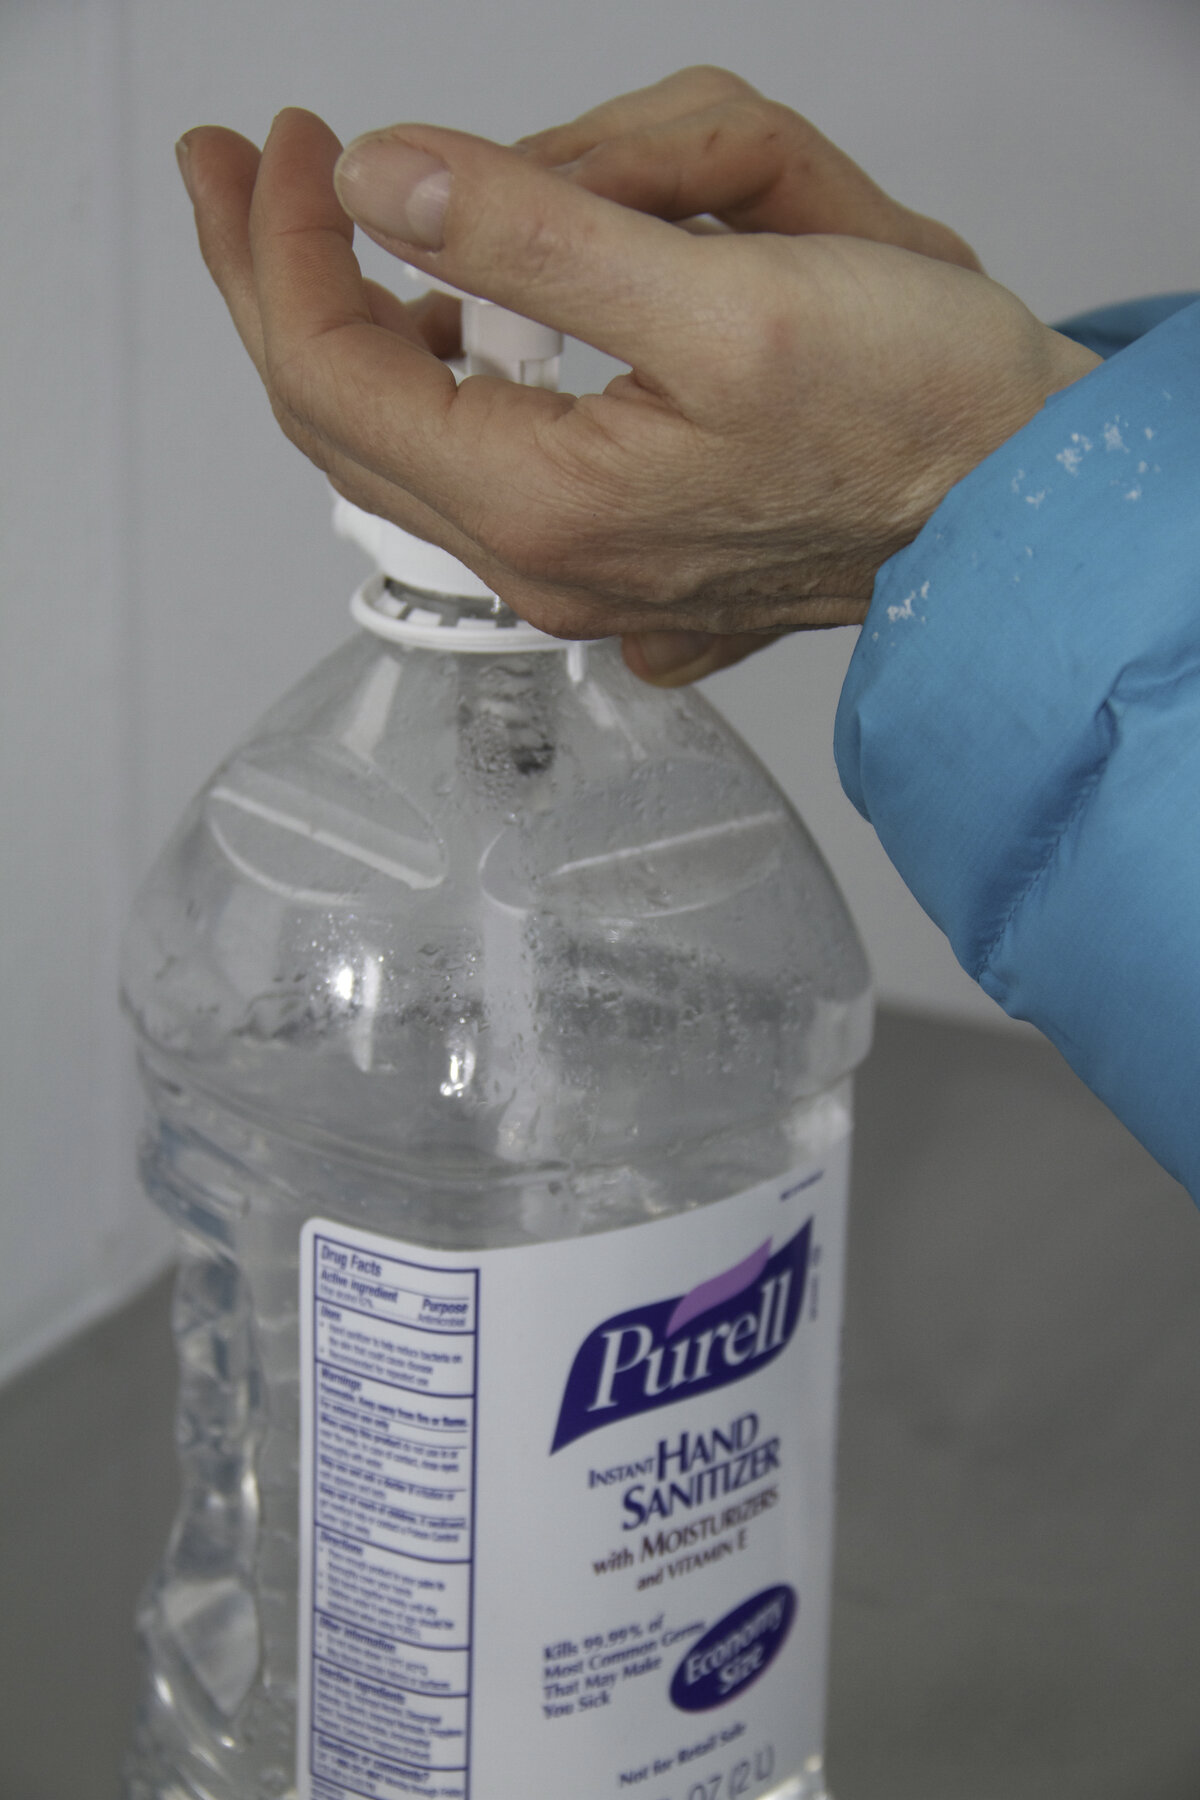 Sanitizing gel is available throughout camp to prevent germs